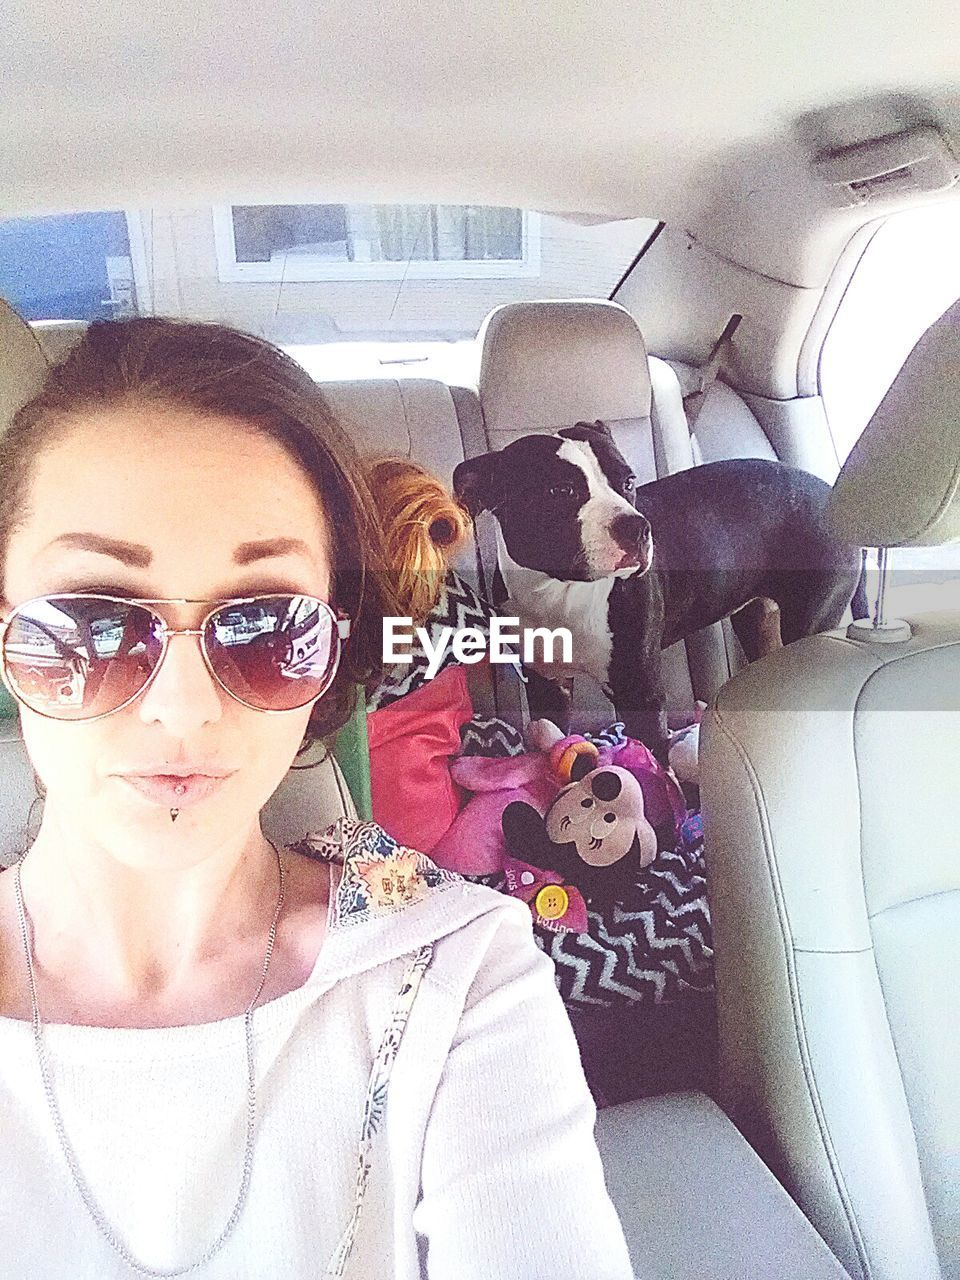 vehicle interior, car interior, eyeglasses, looking at camera, car, one person, real people, dog, young women, young adult, transportation, pets, animal themes, portrait, indoors, one animal, domestic animals, day, mammal, vehicle seat, close-up, people